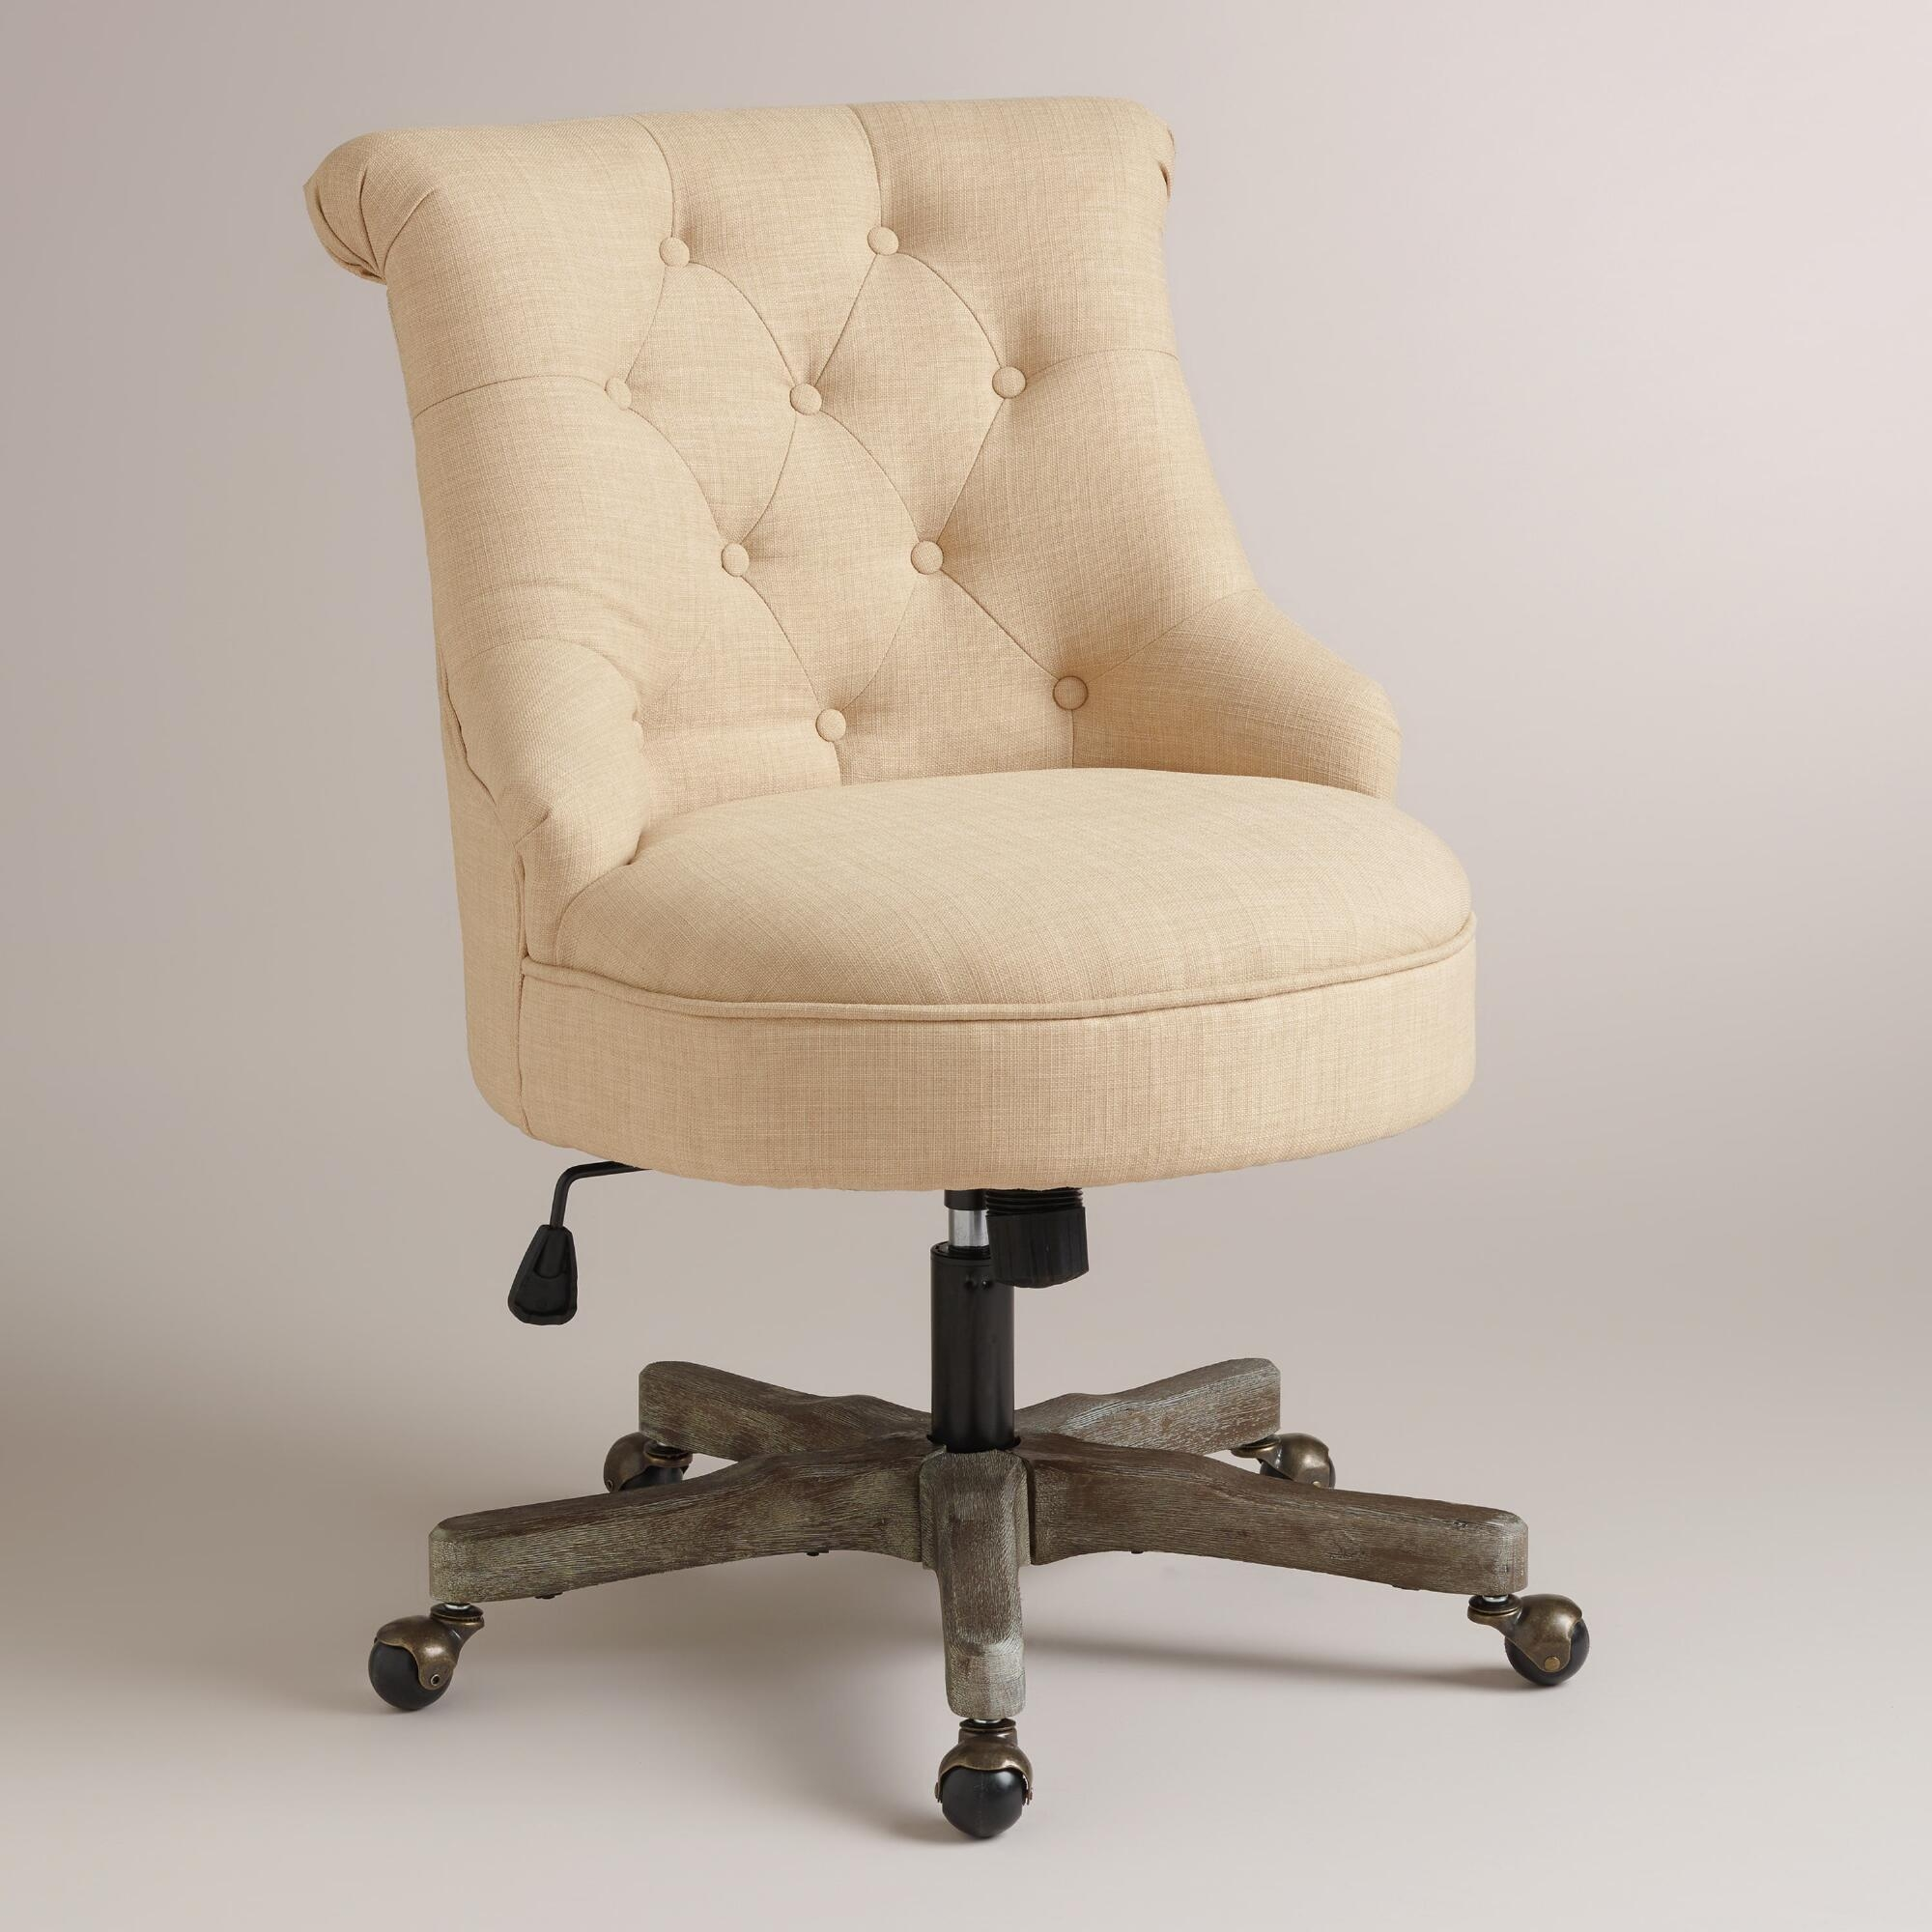 Good Looking Upholstered Desk Chair Pertaining To Sofa Desk Chairs (View 10 of 20)